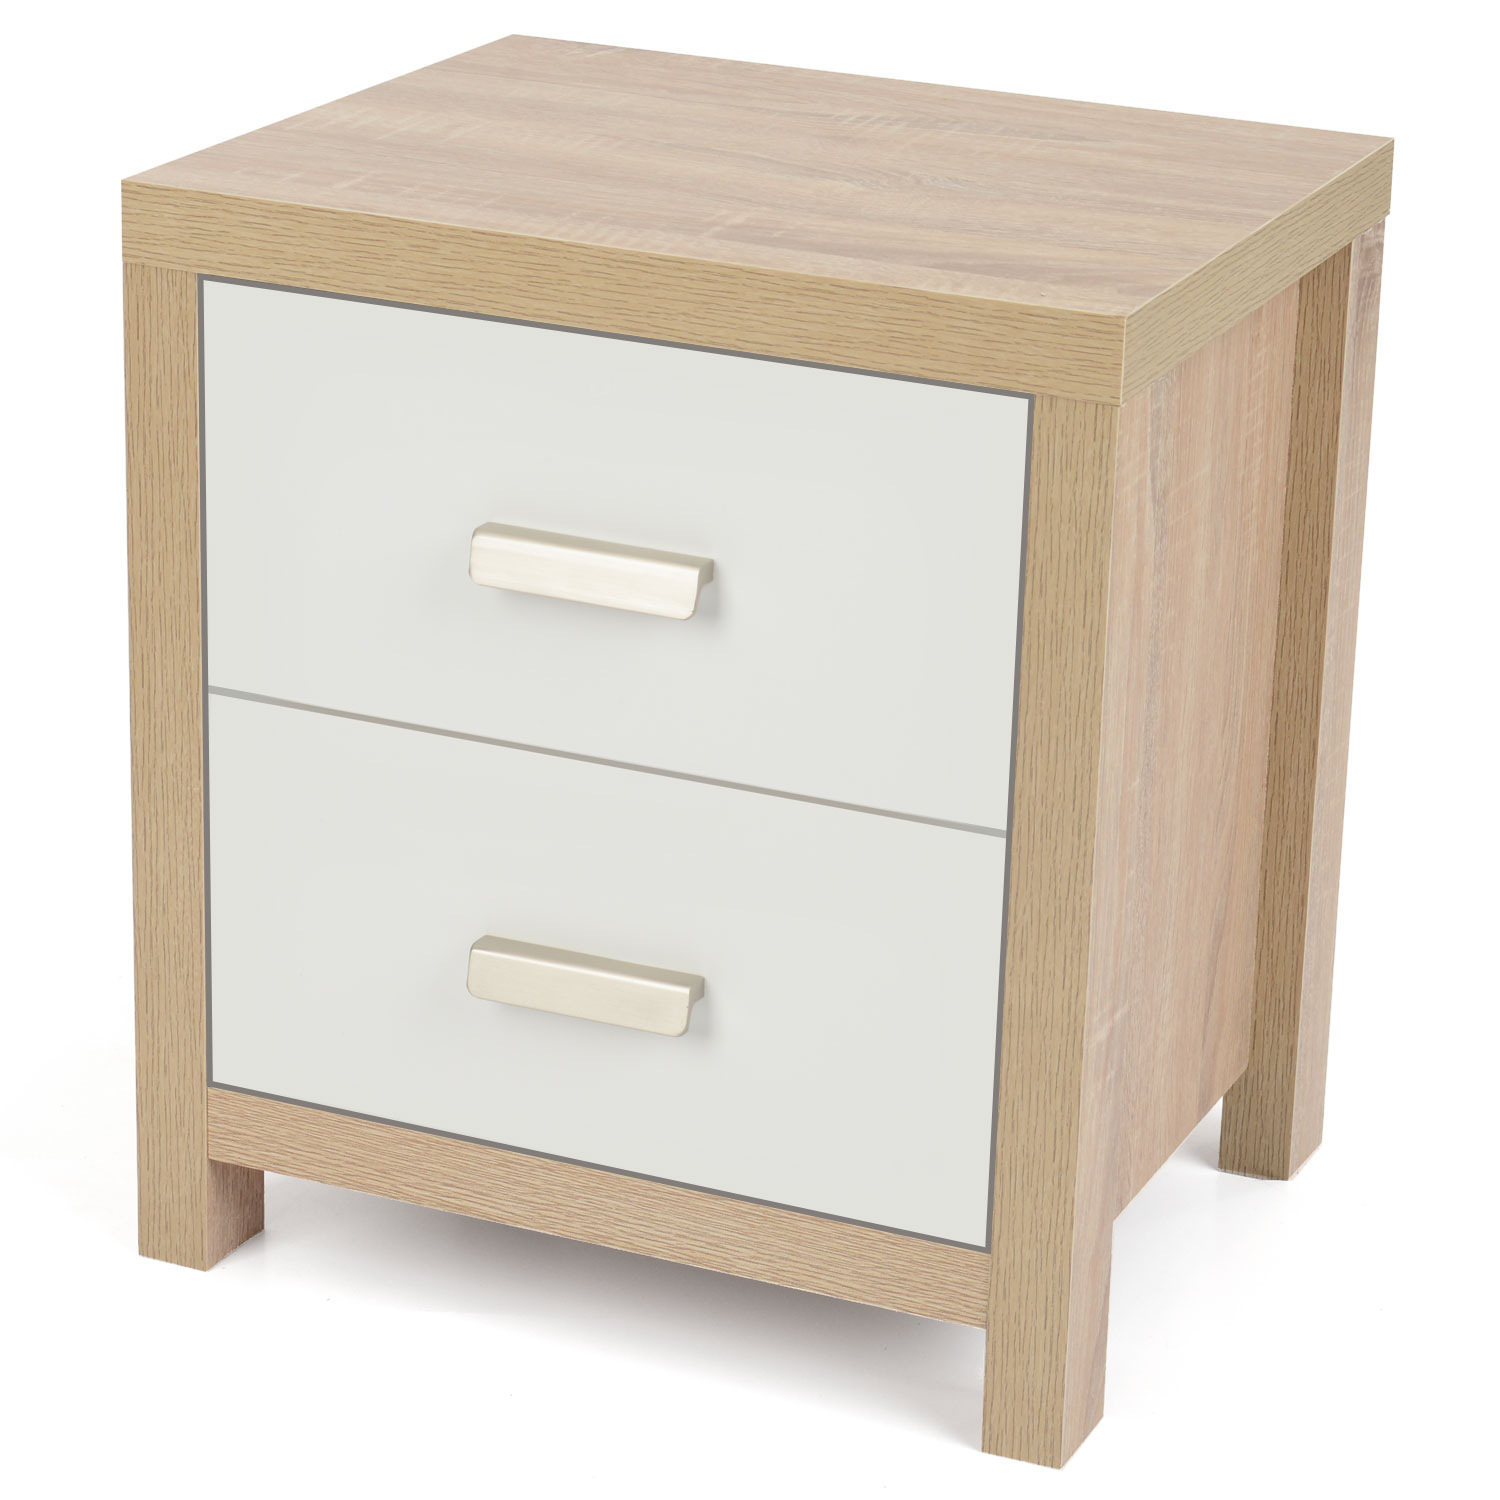 Image of Bianco Oak Effect Bedside Table